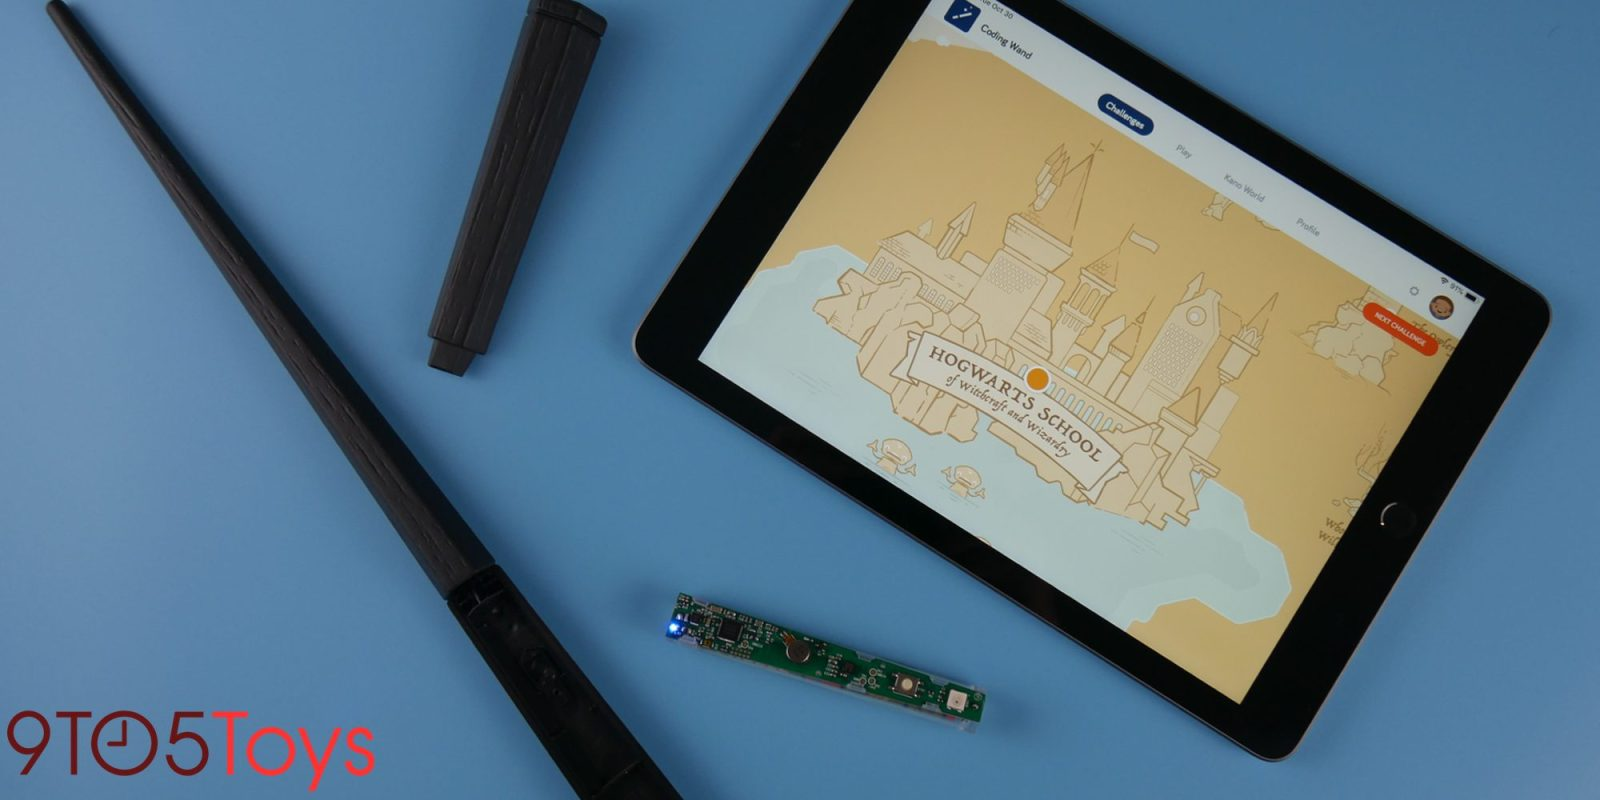 Kano's Harry Potter Wand Kit Now Available at Apple Stores